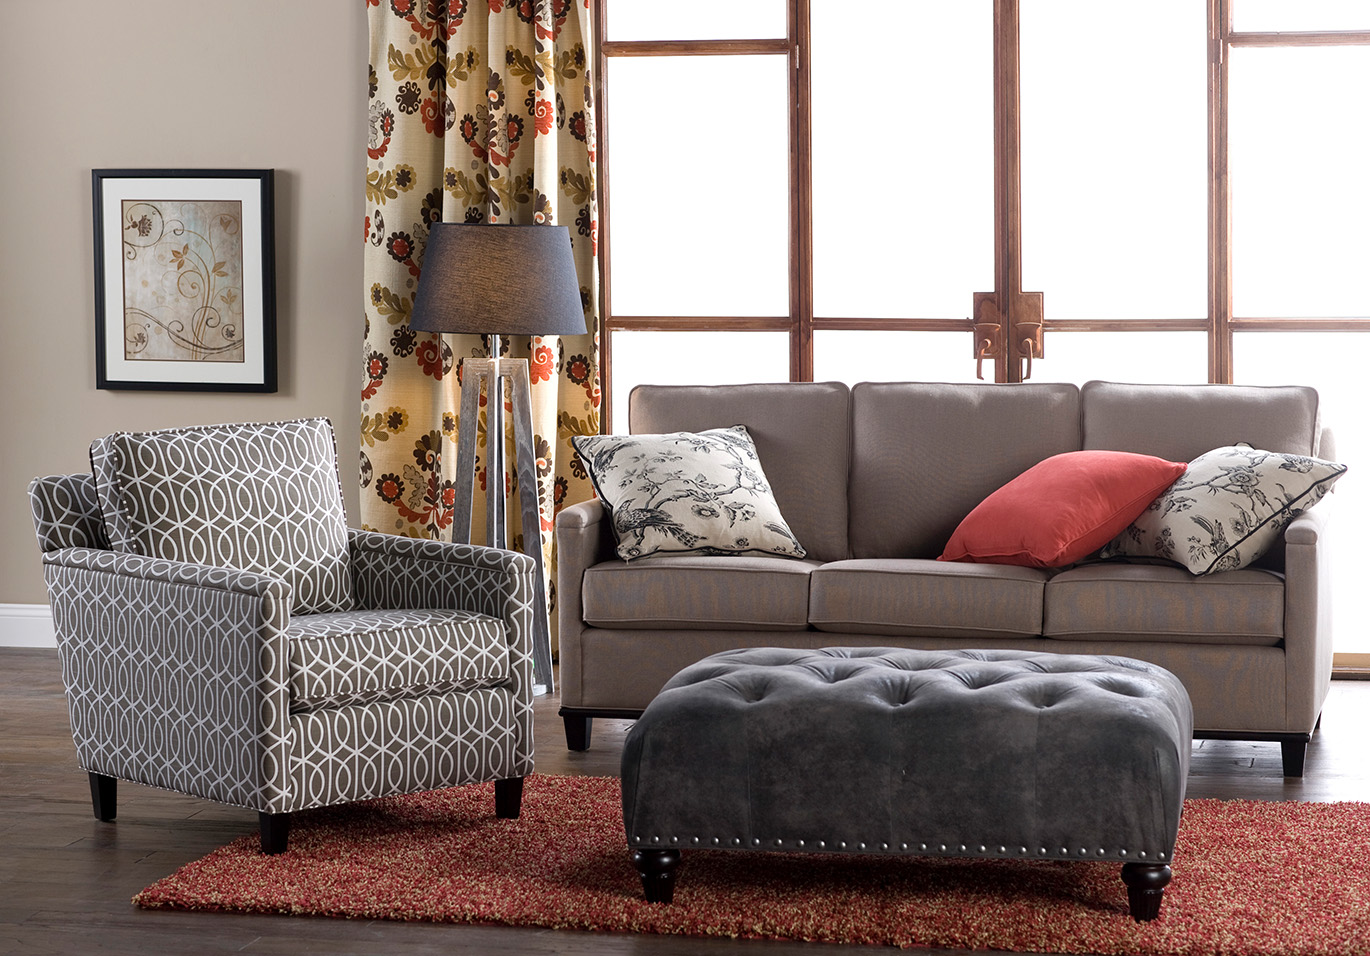 Concepts-Easton-sofa-chair-Presto-ottoman.jpg